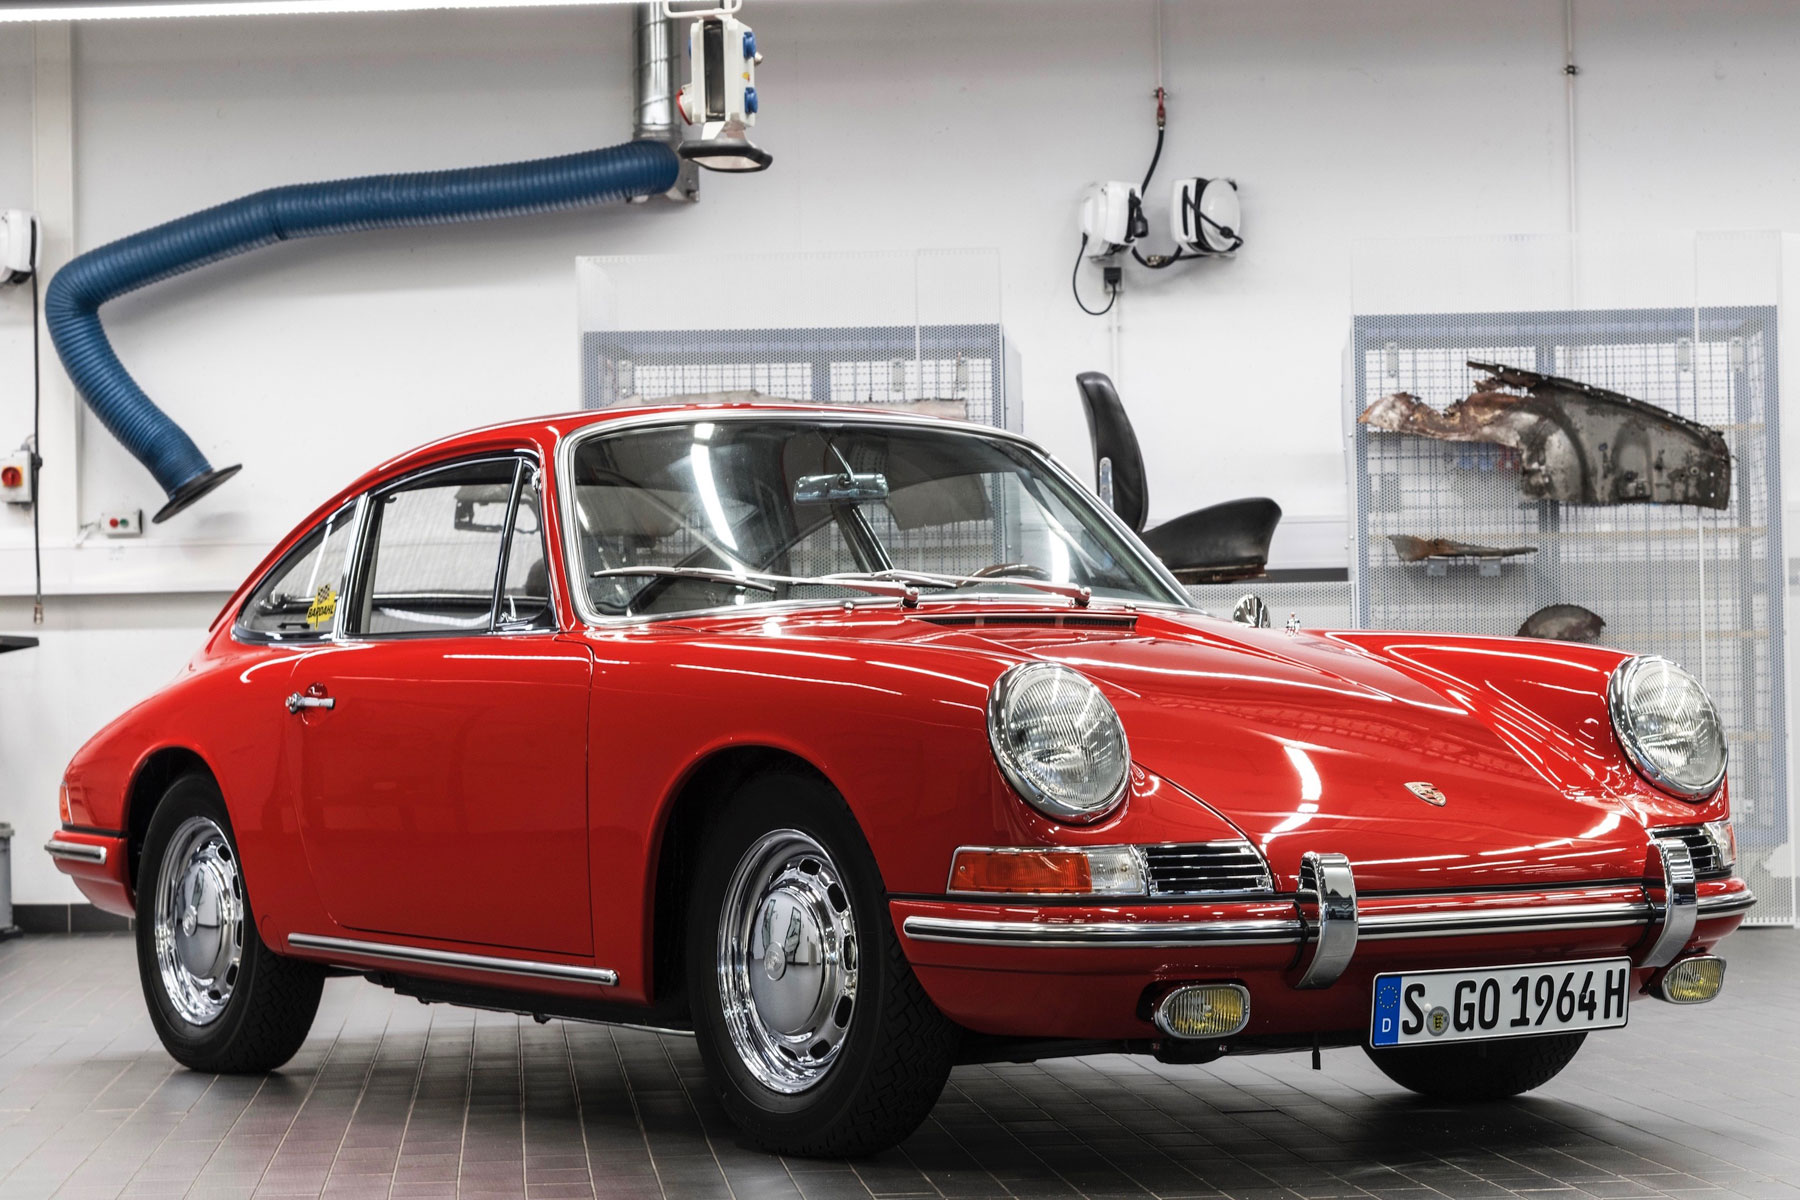 Amazing Barn Find Porsche 901 Pre Dates The 911